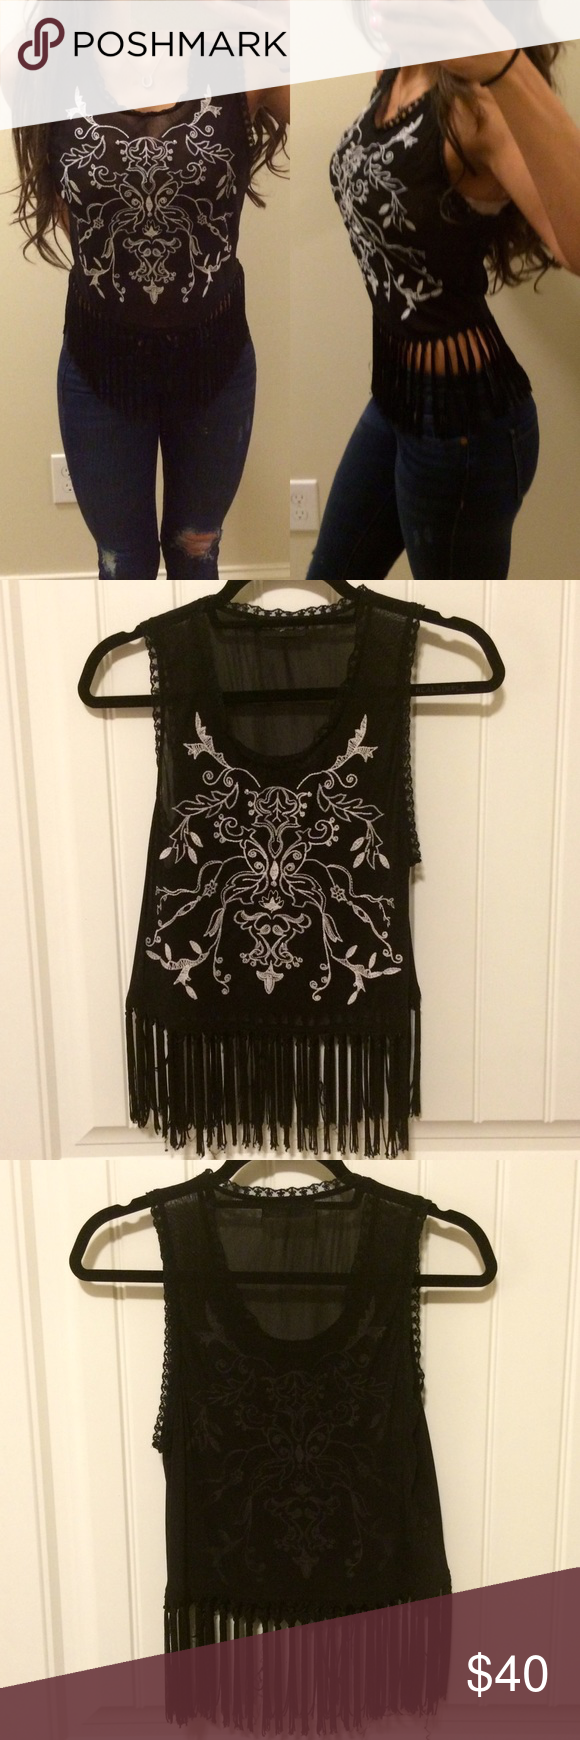 Black and White Embroidered Fringe Top Black and white embroidered fringe top. Material is semi sheer. Perfect to wear to a country concert in the summer with denim shorts and cowboy boots. Also would look great over a bikini. So many options. Never worn. New without tags. Purchased from a boutique in Texas. Perfect condition. Tops Tank Tops